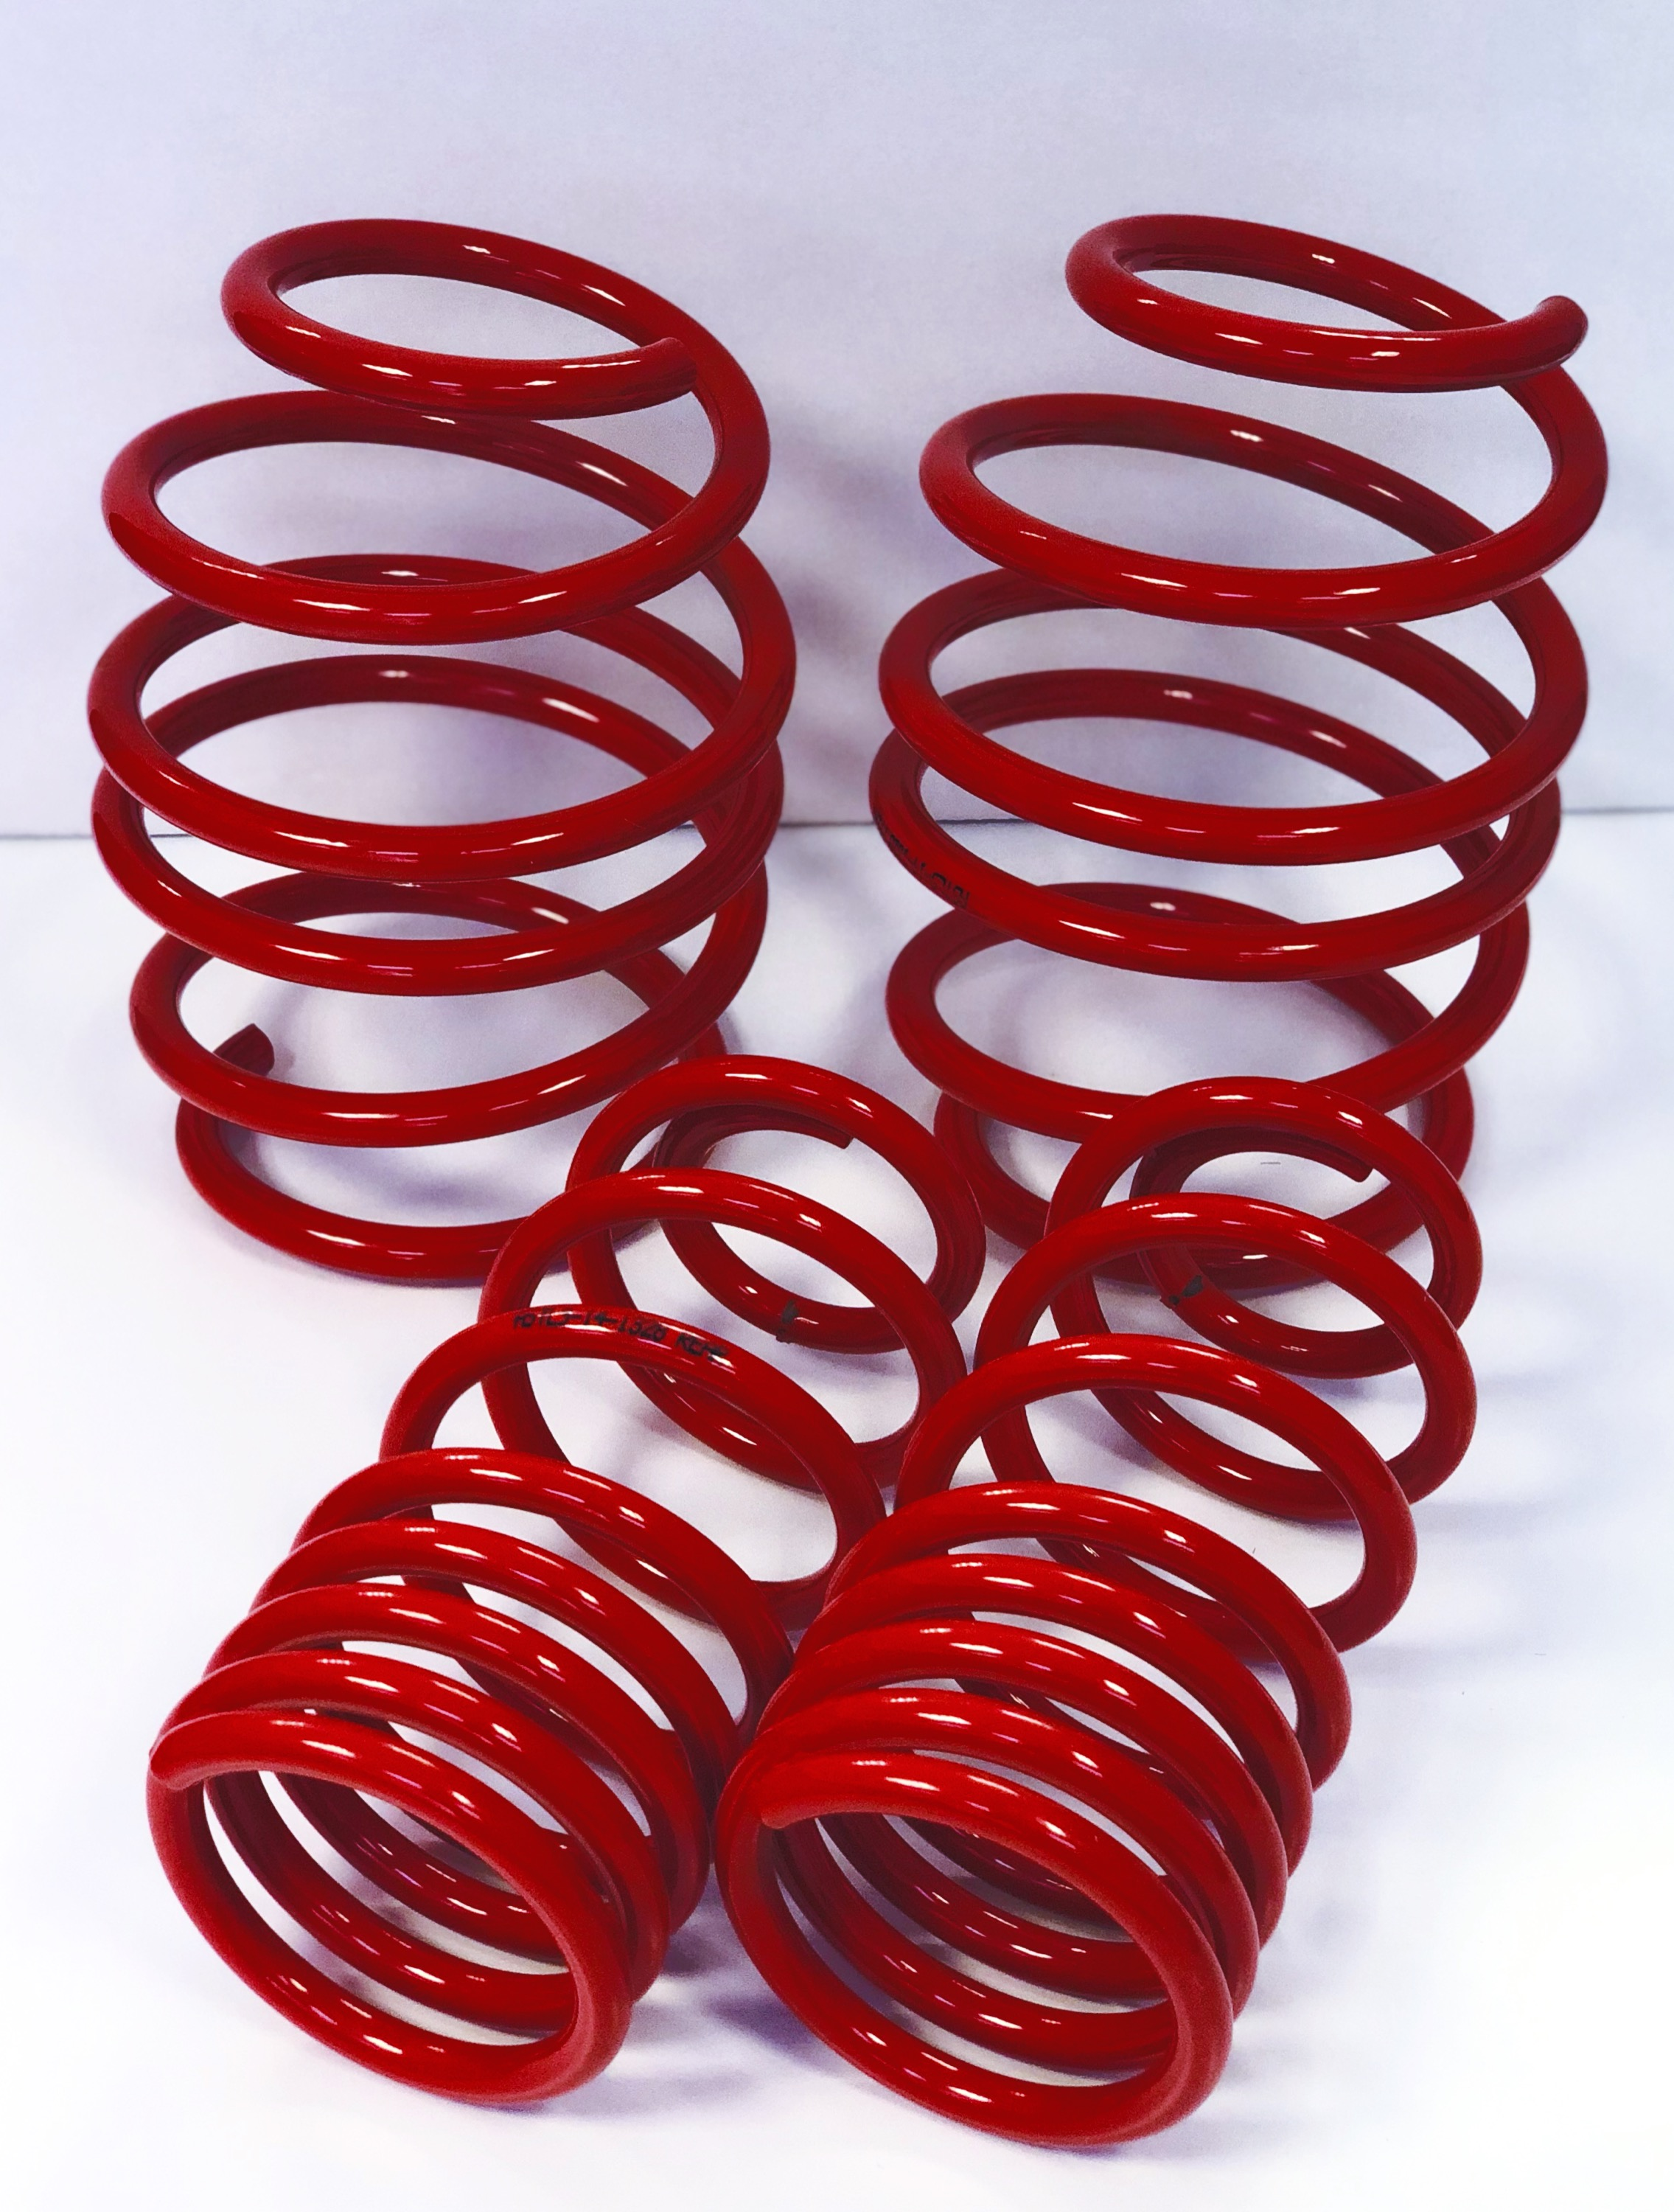 Vauxhall OMEGA AST Suspension Lowering Springs 35MM